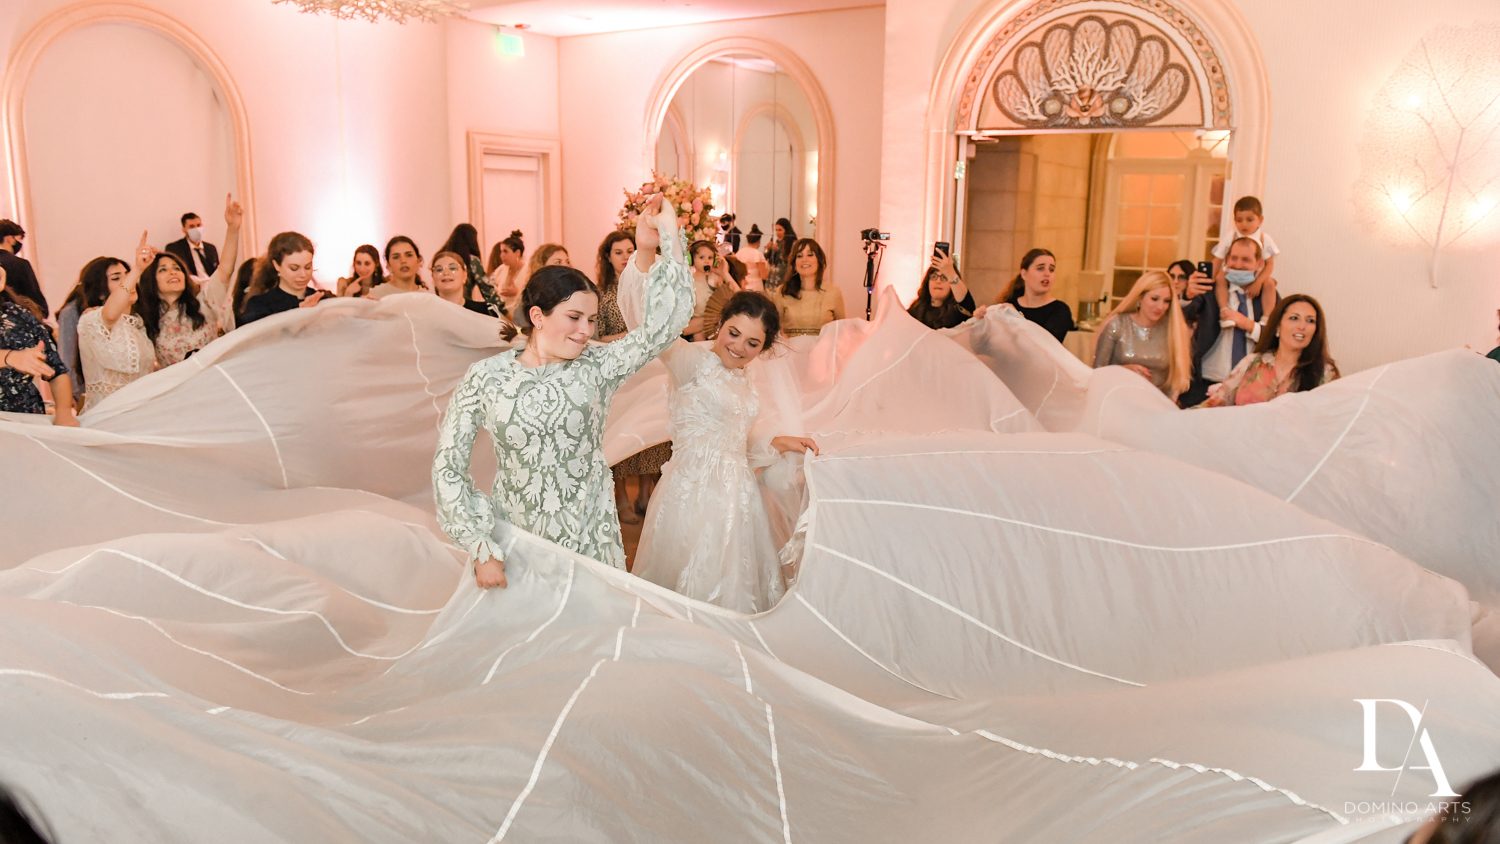 Florida Wedding Shtick at Jewish Orthodox Wedding in Palm Beach by Domino Arts Photography